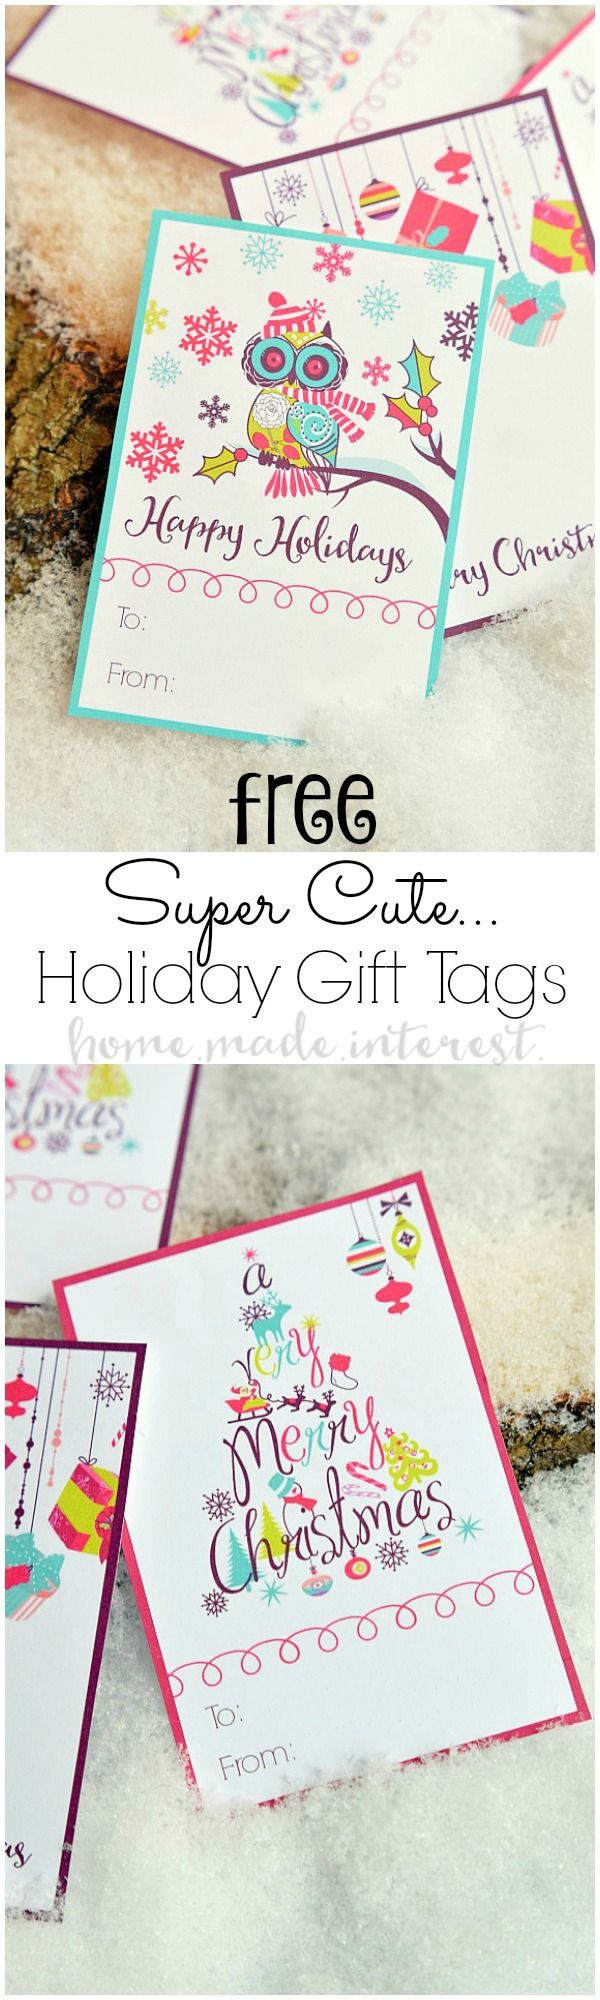 Super cute holiday gift tags free printable negle Choice Image